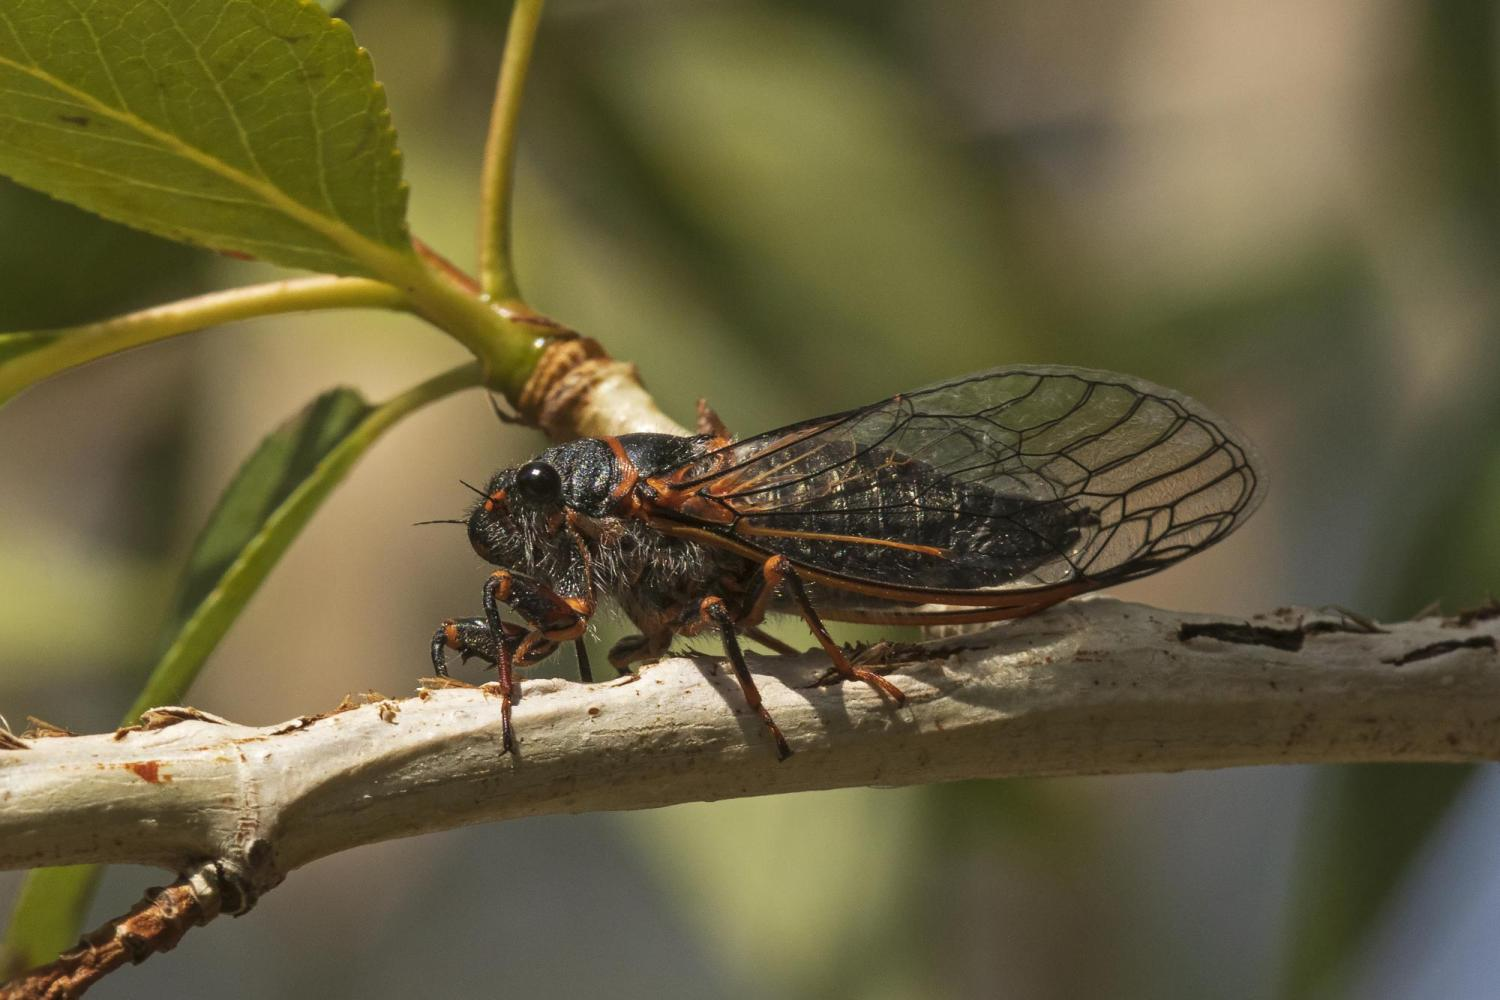 A Putnam's cicada calls from a cottonwood twig cut numerous times to insert eggs below the bark